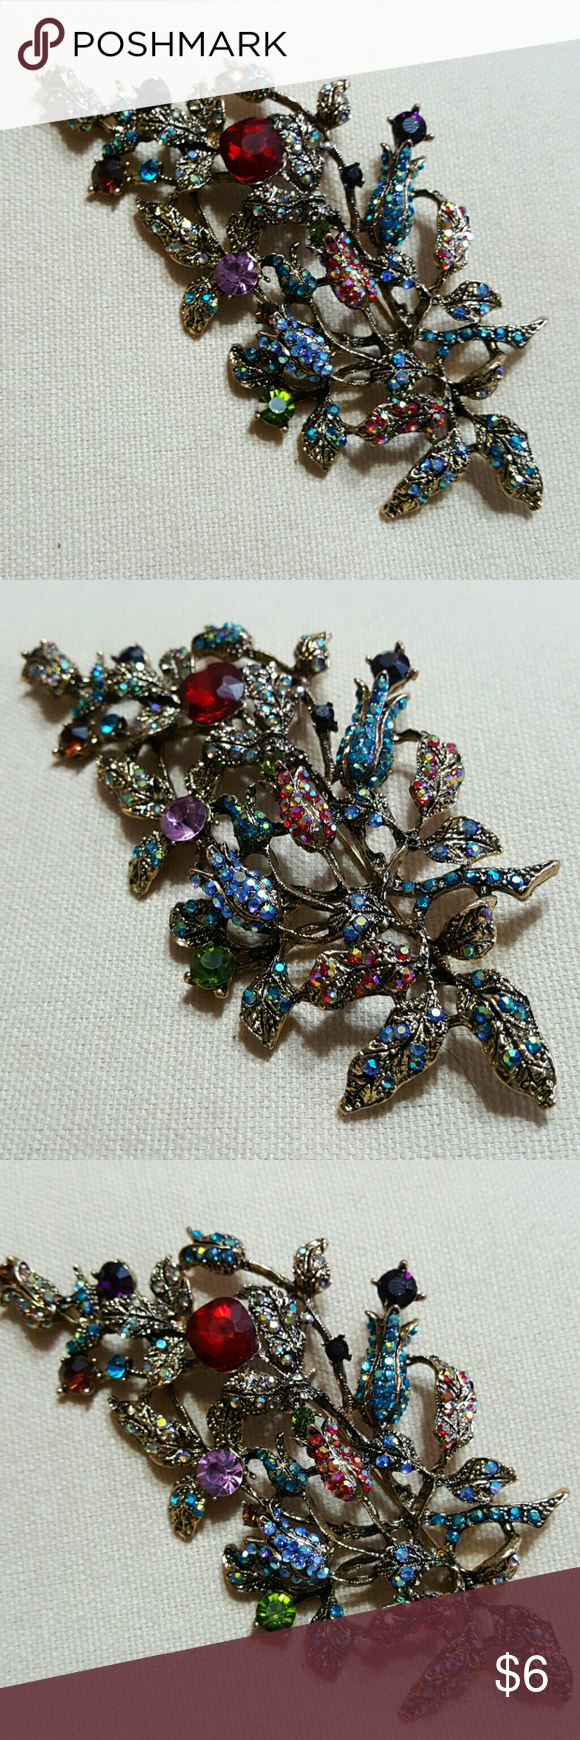 Rhinestone Pendant Brooch Beautiful flower filled brooch that can be worn 2 different ways.  Feel free to ask any questions before purchasing.  Thanks for shopping my closet! Metal Gallery  Jewelry Brooches